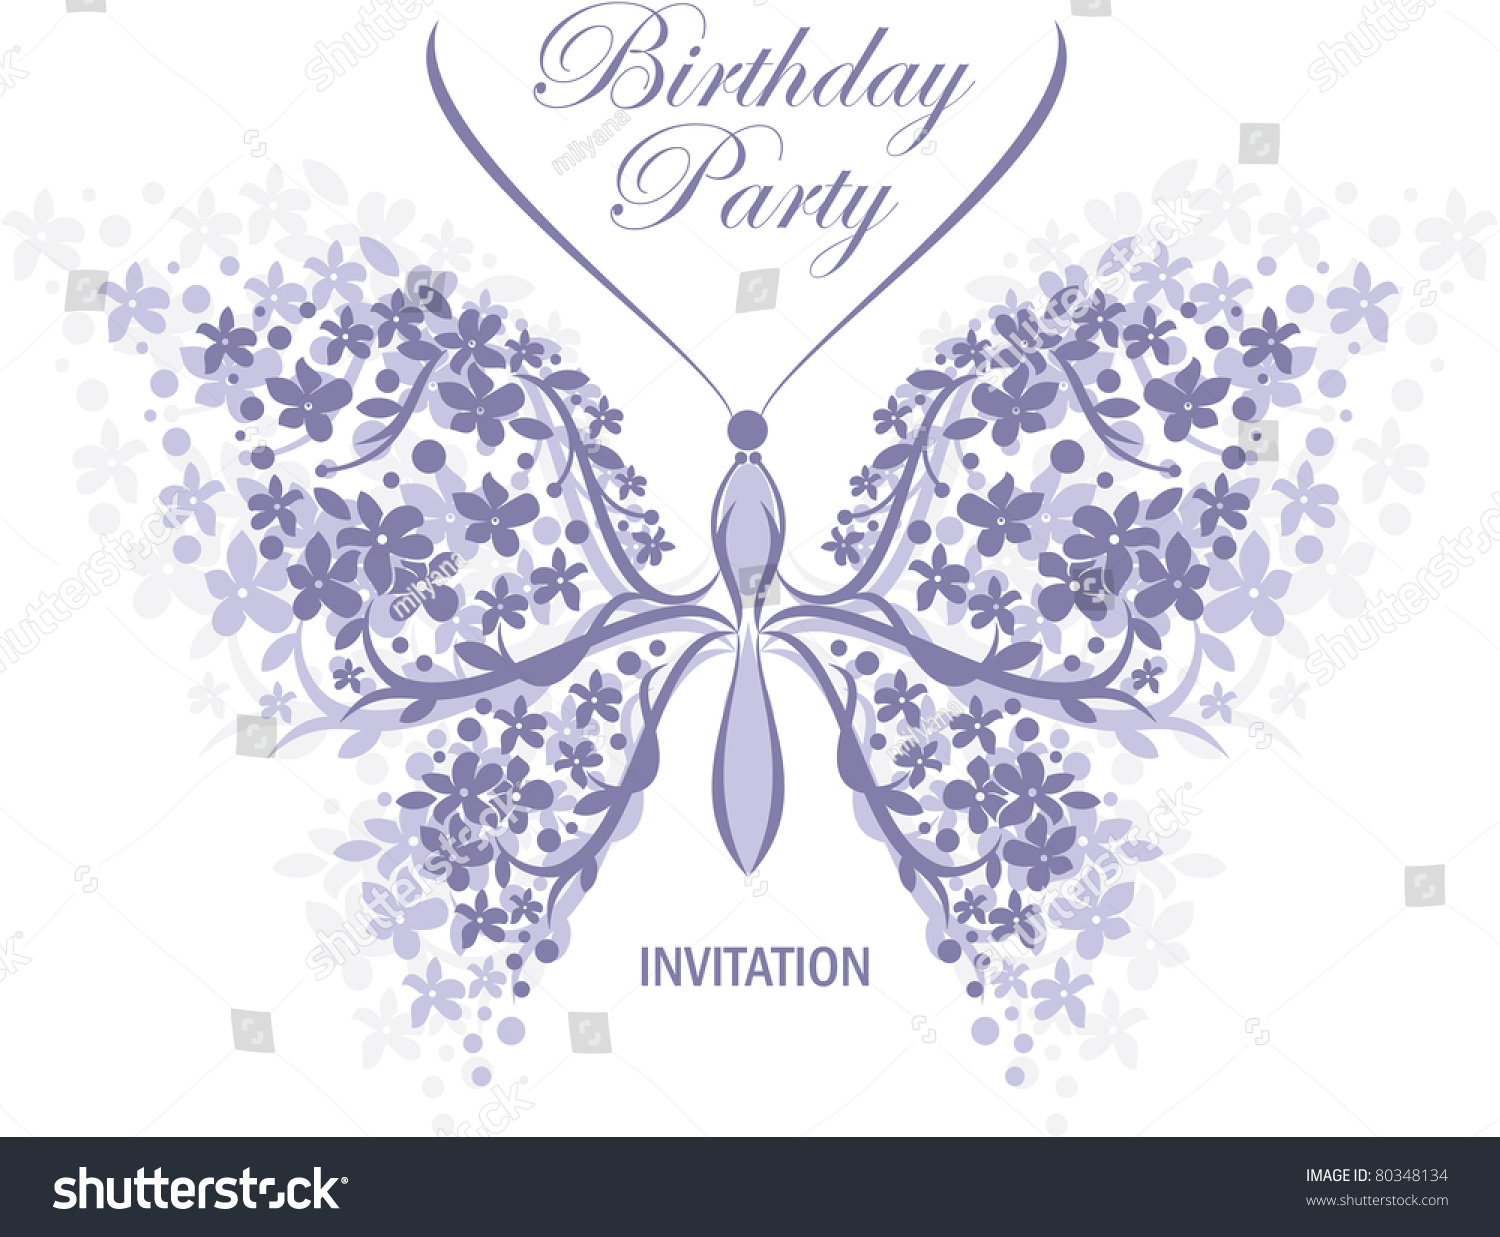 Birthday Wedding Invitation Design Butterfly Flower Stock Vector ...